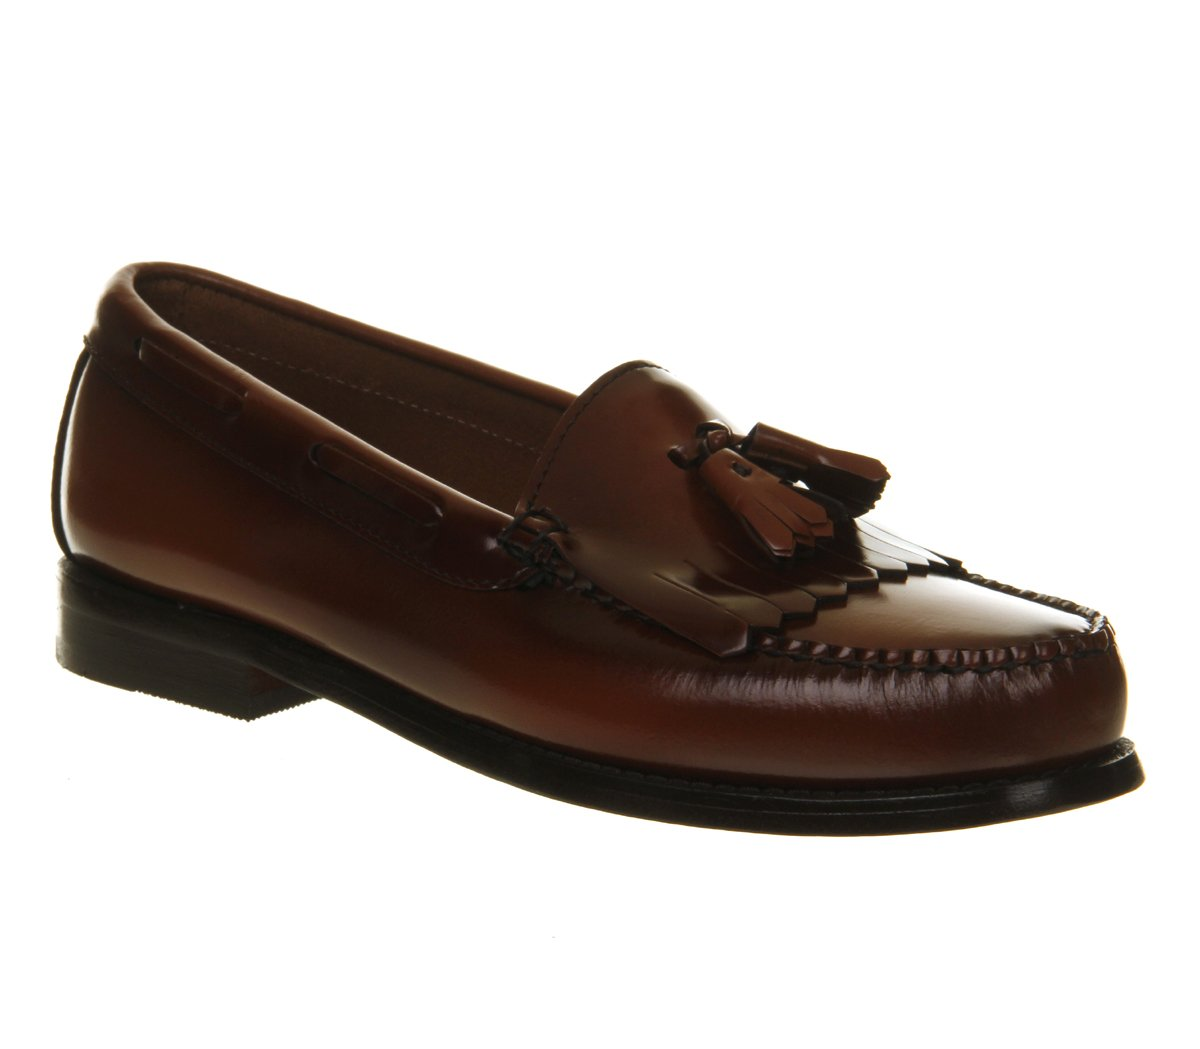 Mens G.H Bass Weejuns Layton Moc Kiltie Loafer Work Office Leather Shoes:  Amazon.co.uk: Shoes & Bags